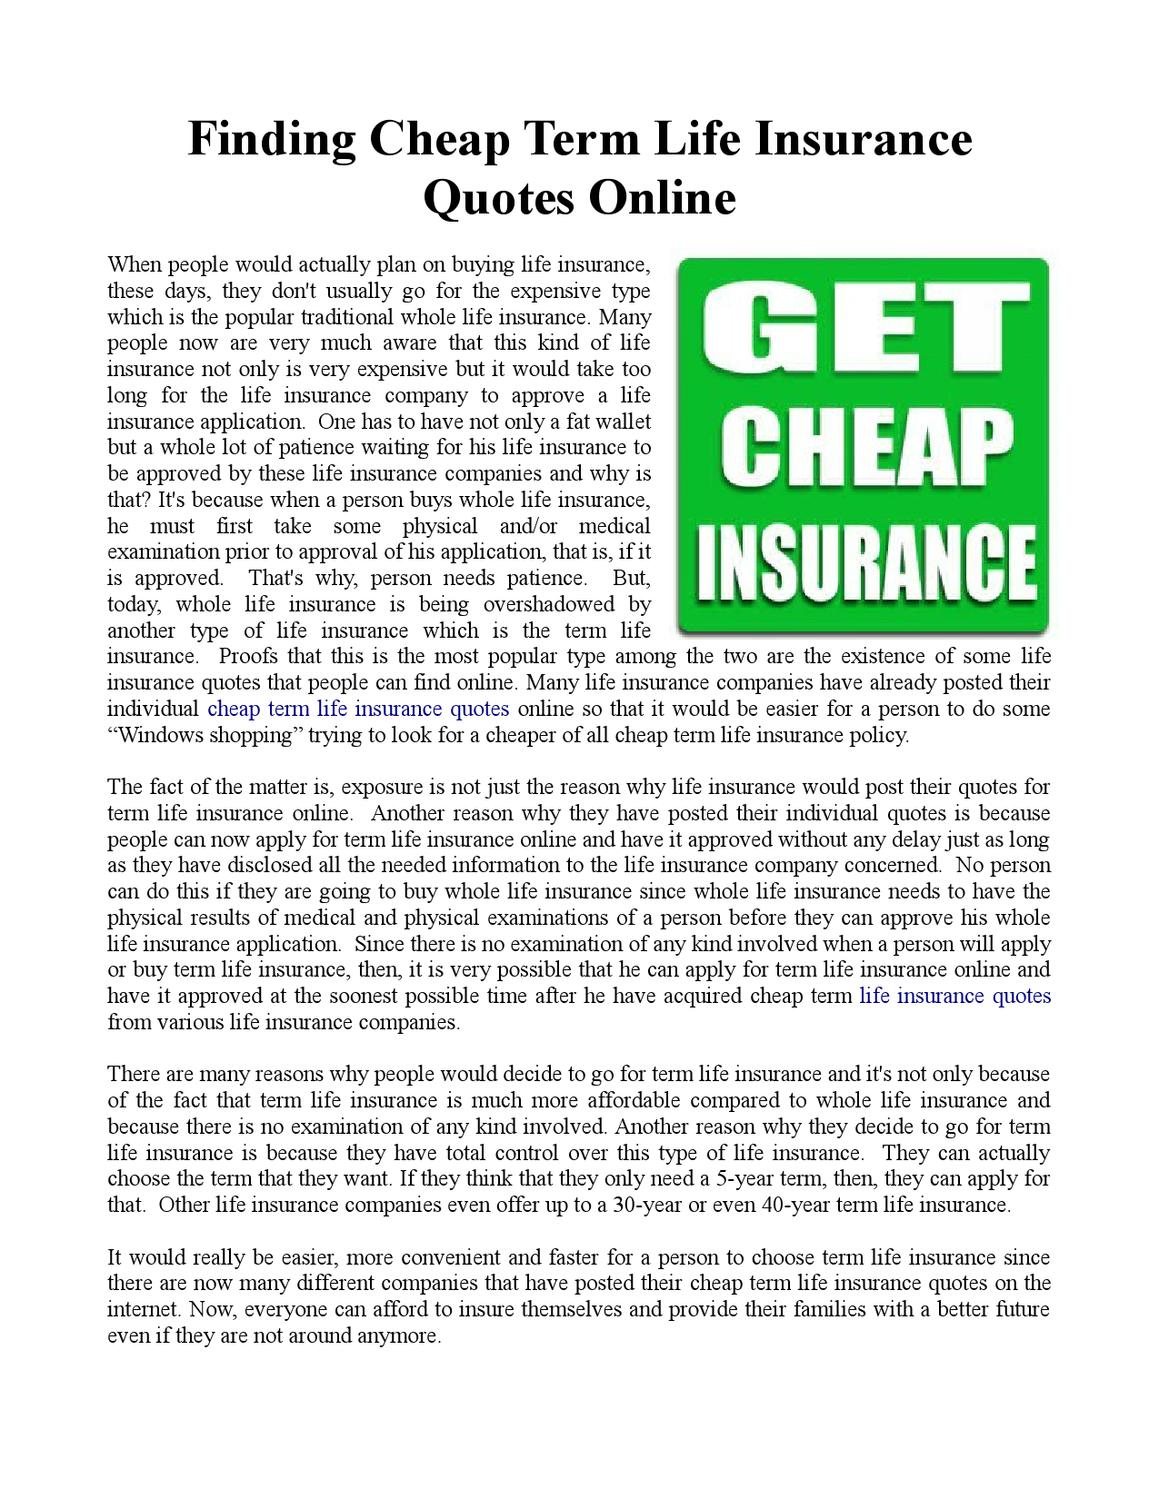 Cheap Term Life Insurance Quotes Finding Cheap Term Life Insurance Quotes Onliner J  Issuu